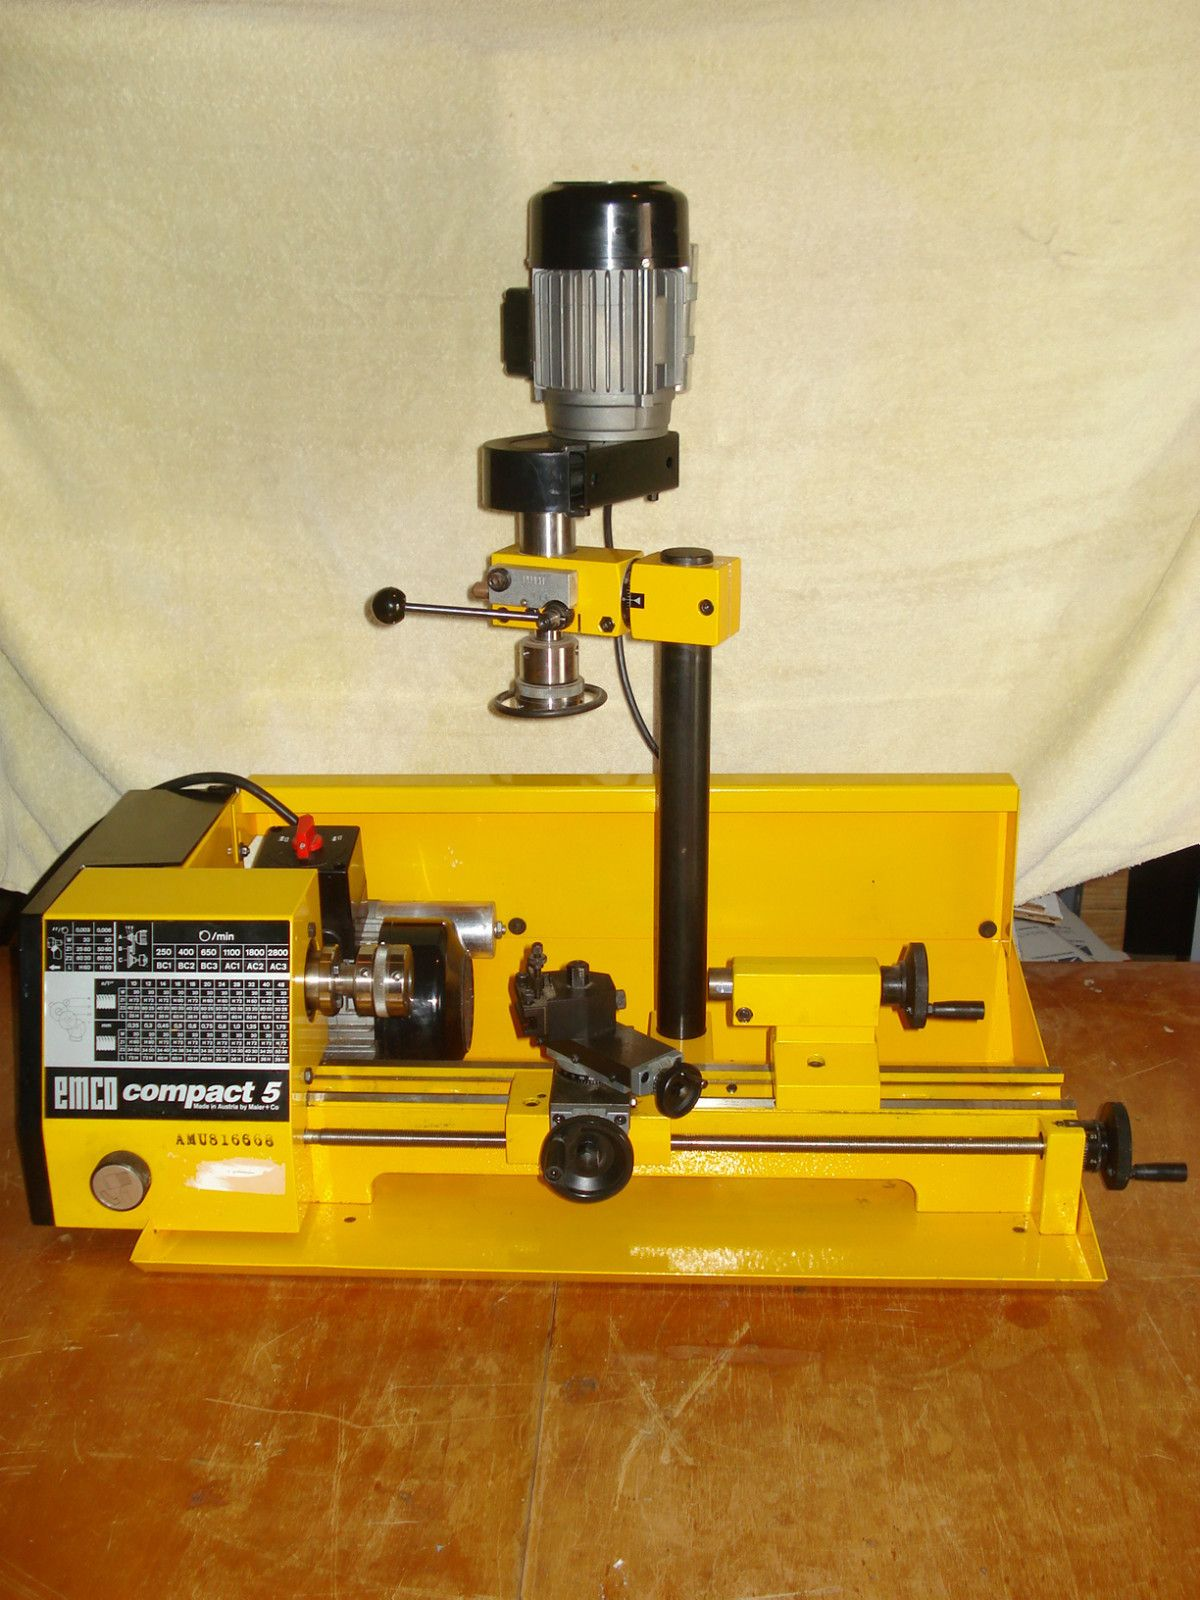 Emco Compact 5 lathe with milling accessory extras made in